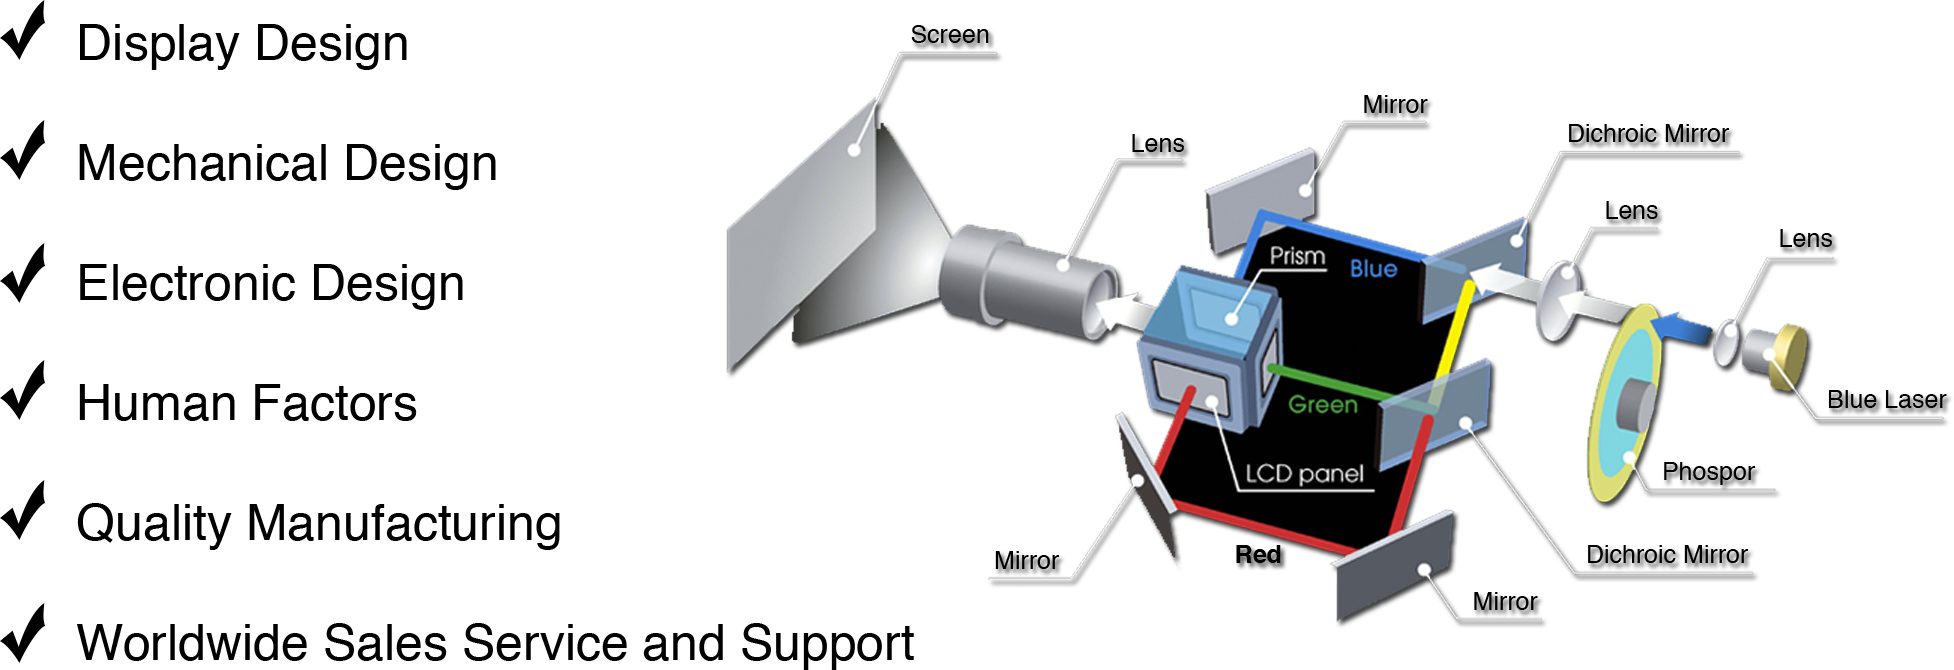 VDCDS Laser Projection